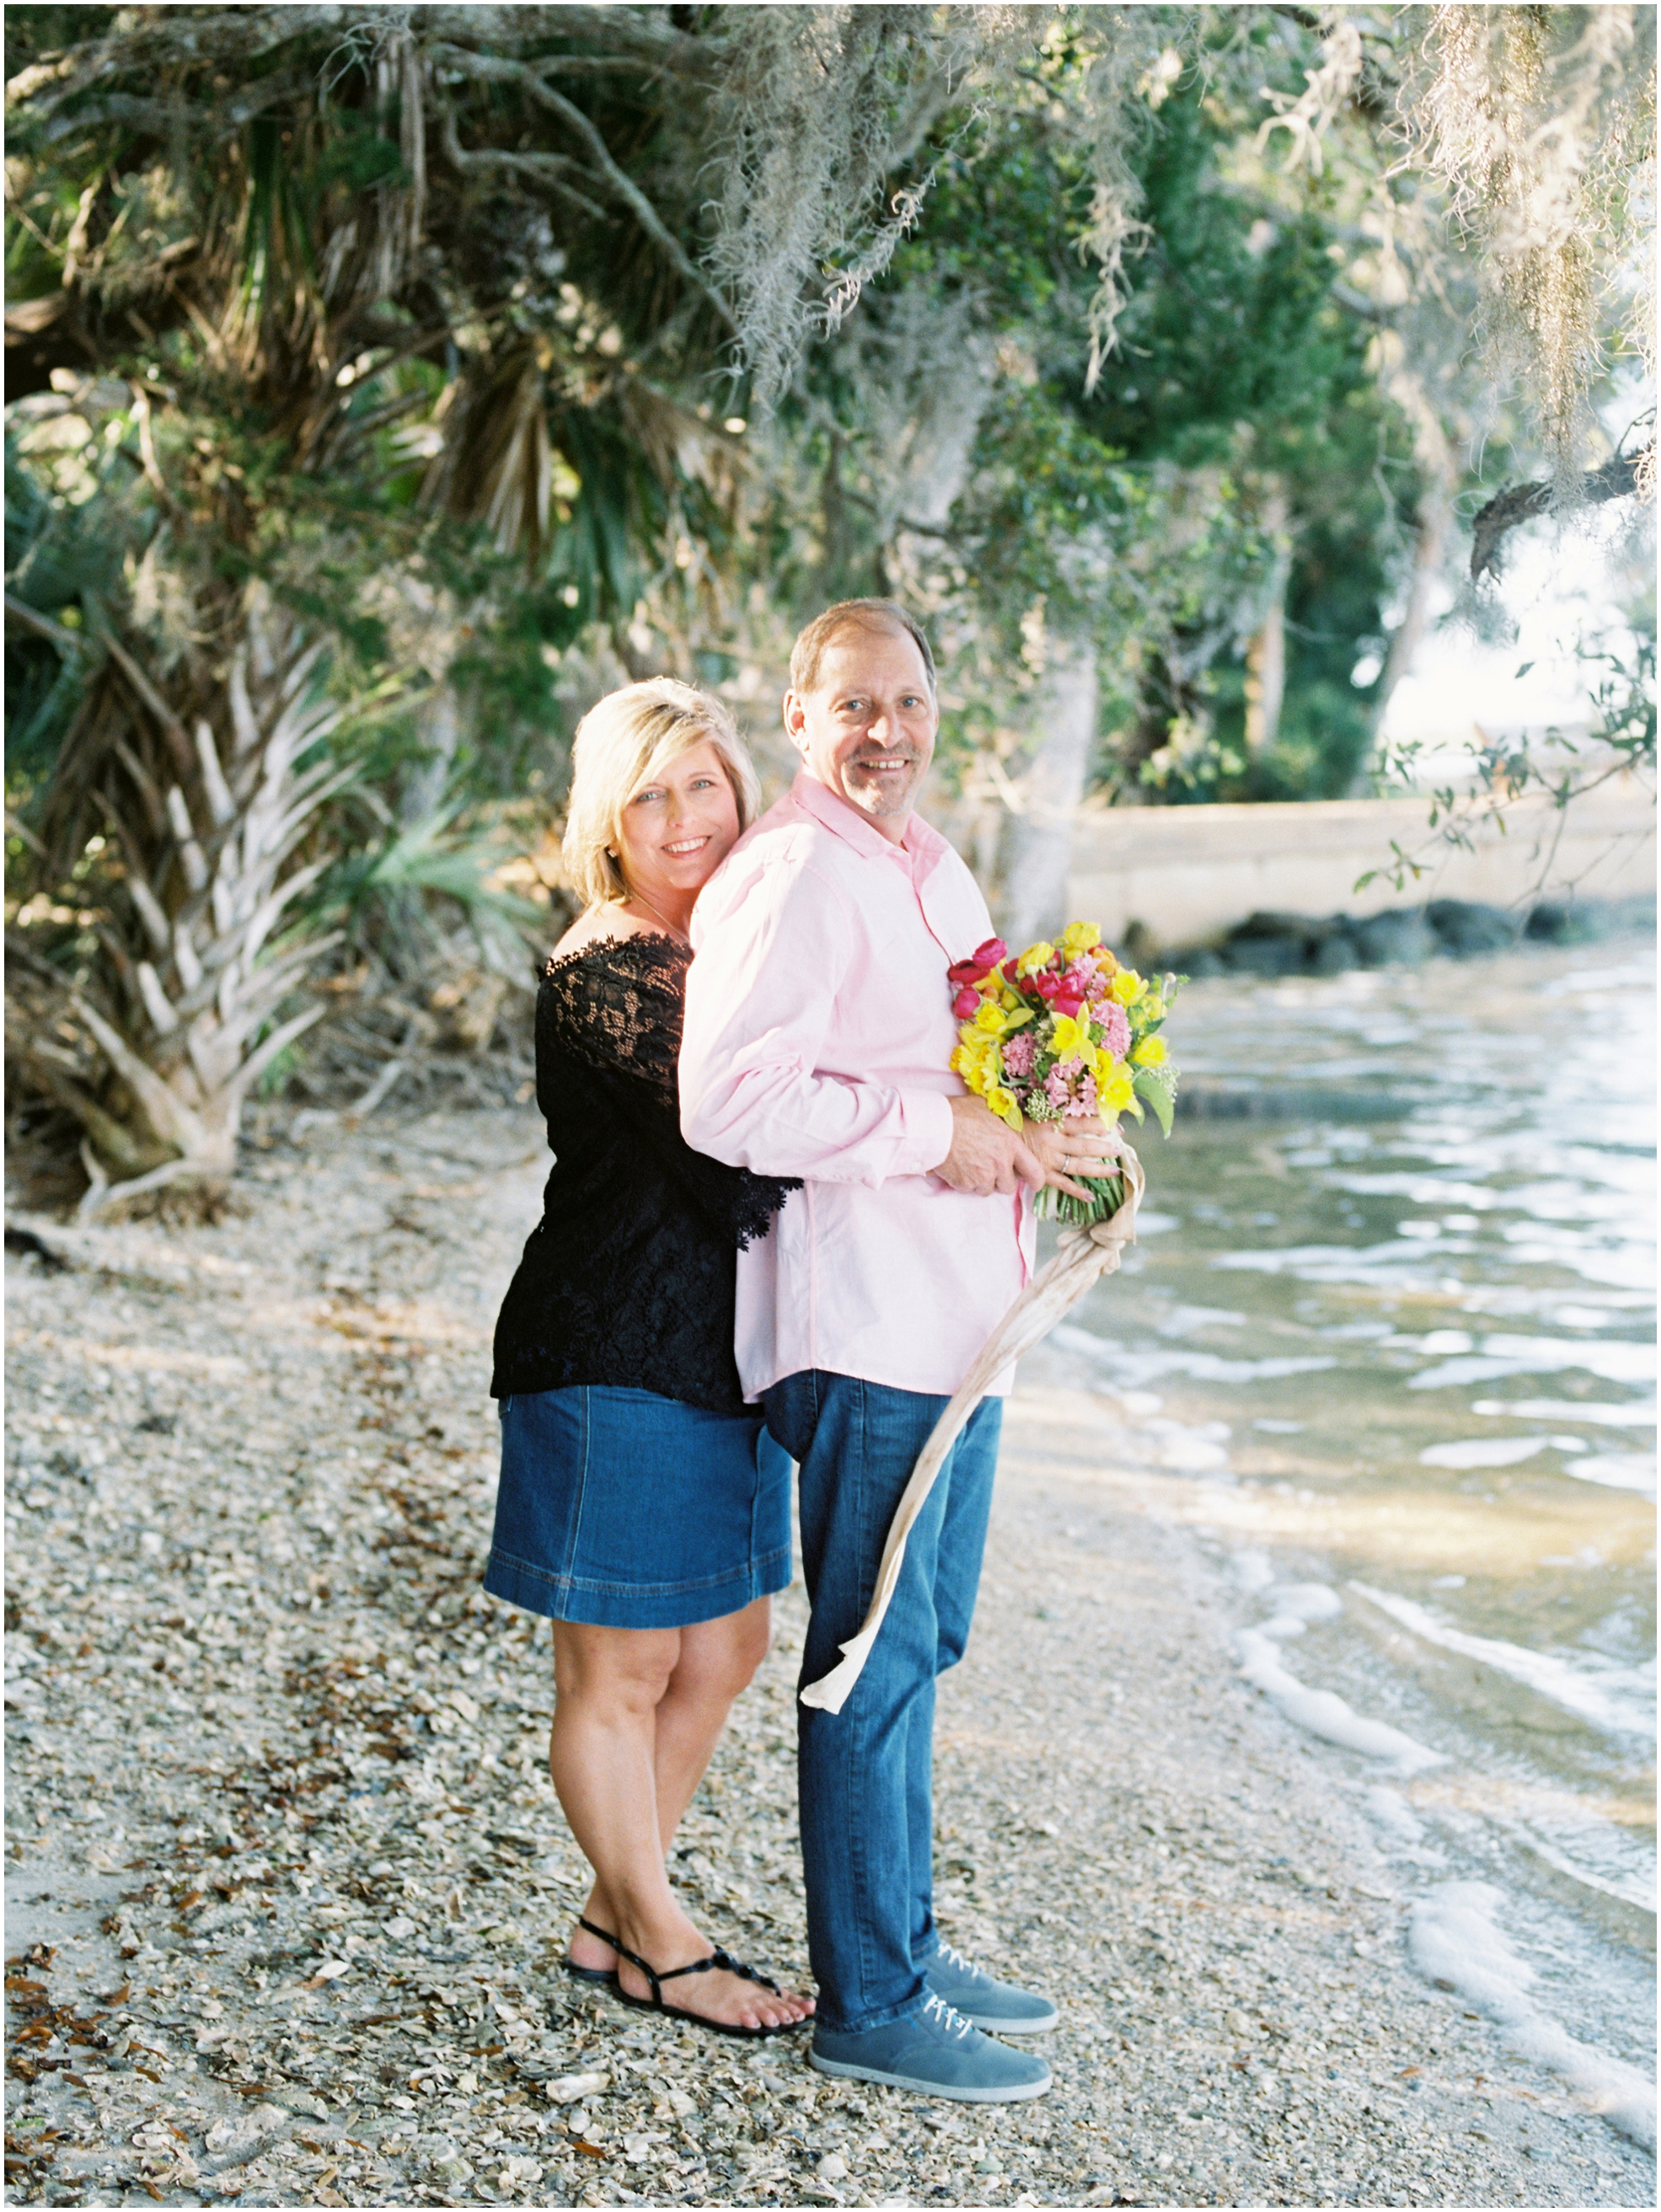 Lisa Silva Photography- Jacksonville, St. Augustine, Amelia Island, Ponte Vedra Beach, North East Florida Fine Art Film Photographer- Anniversary Session at Washington Oaks in Palm Coast, Florida_0054.jpg